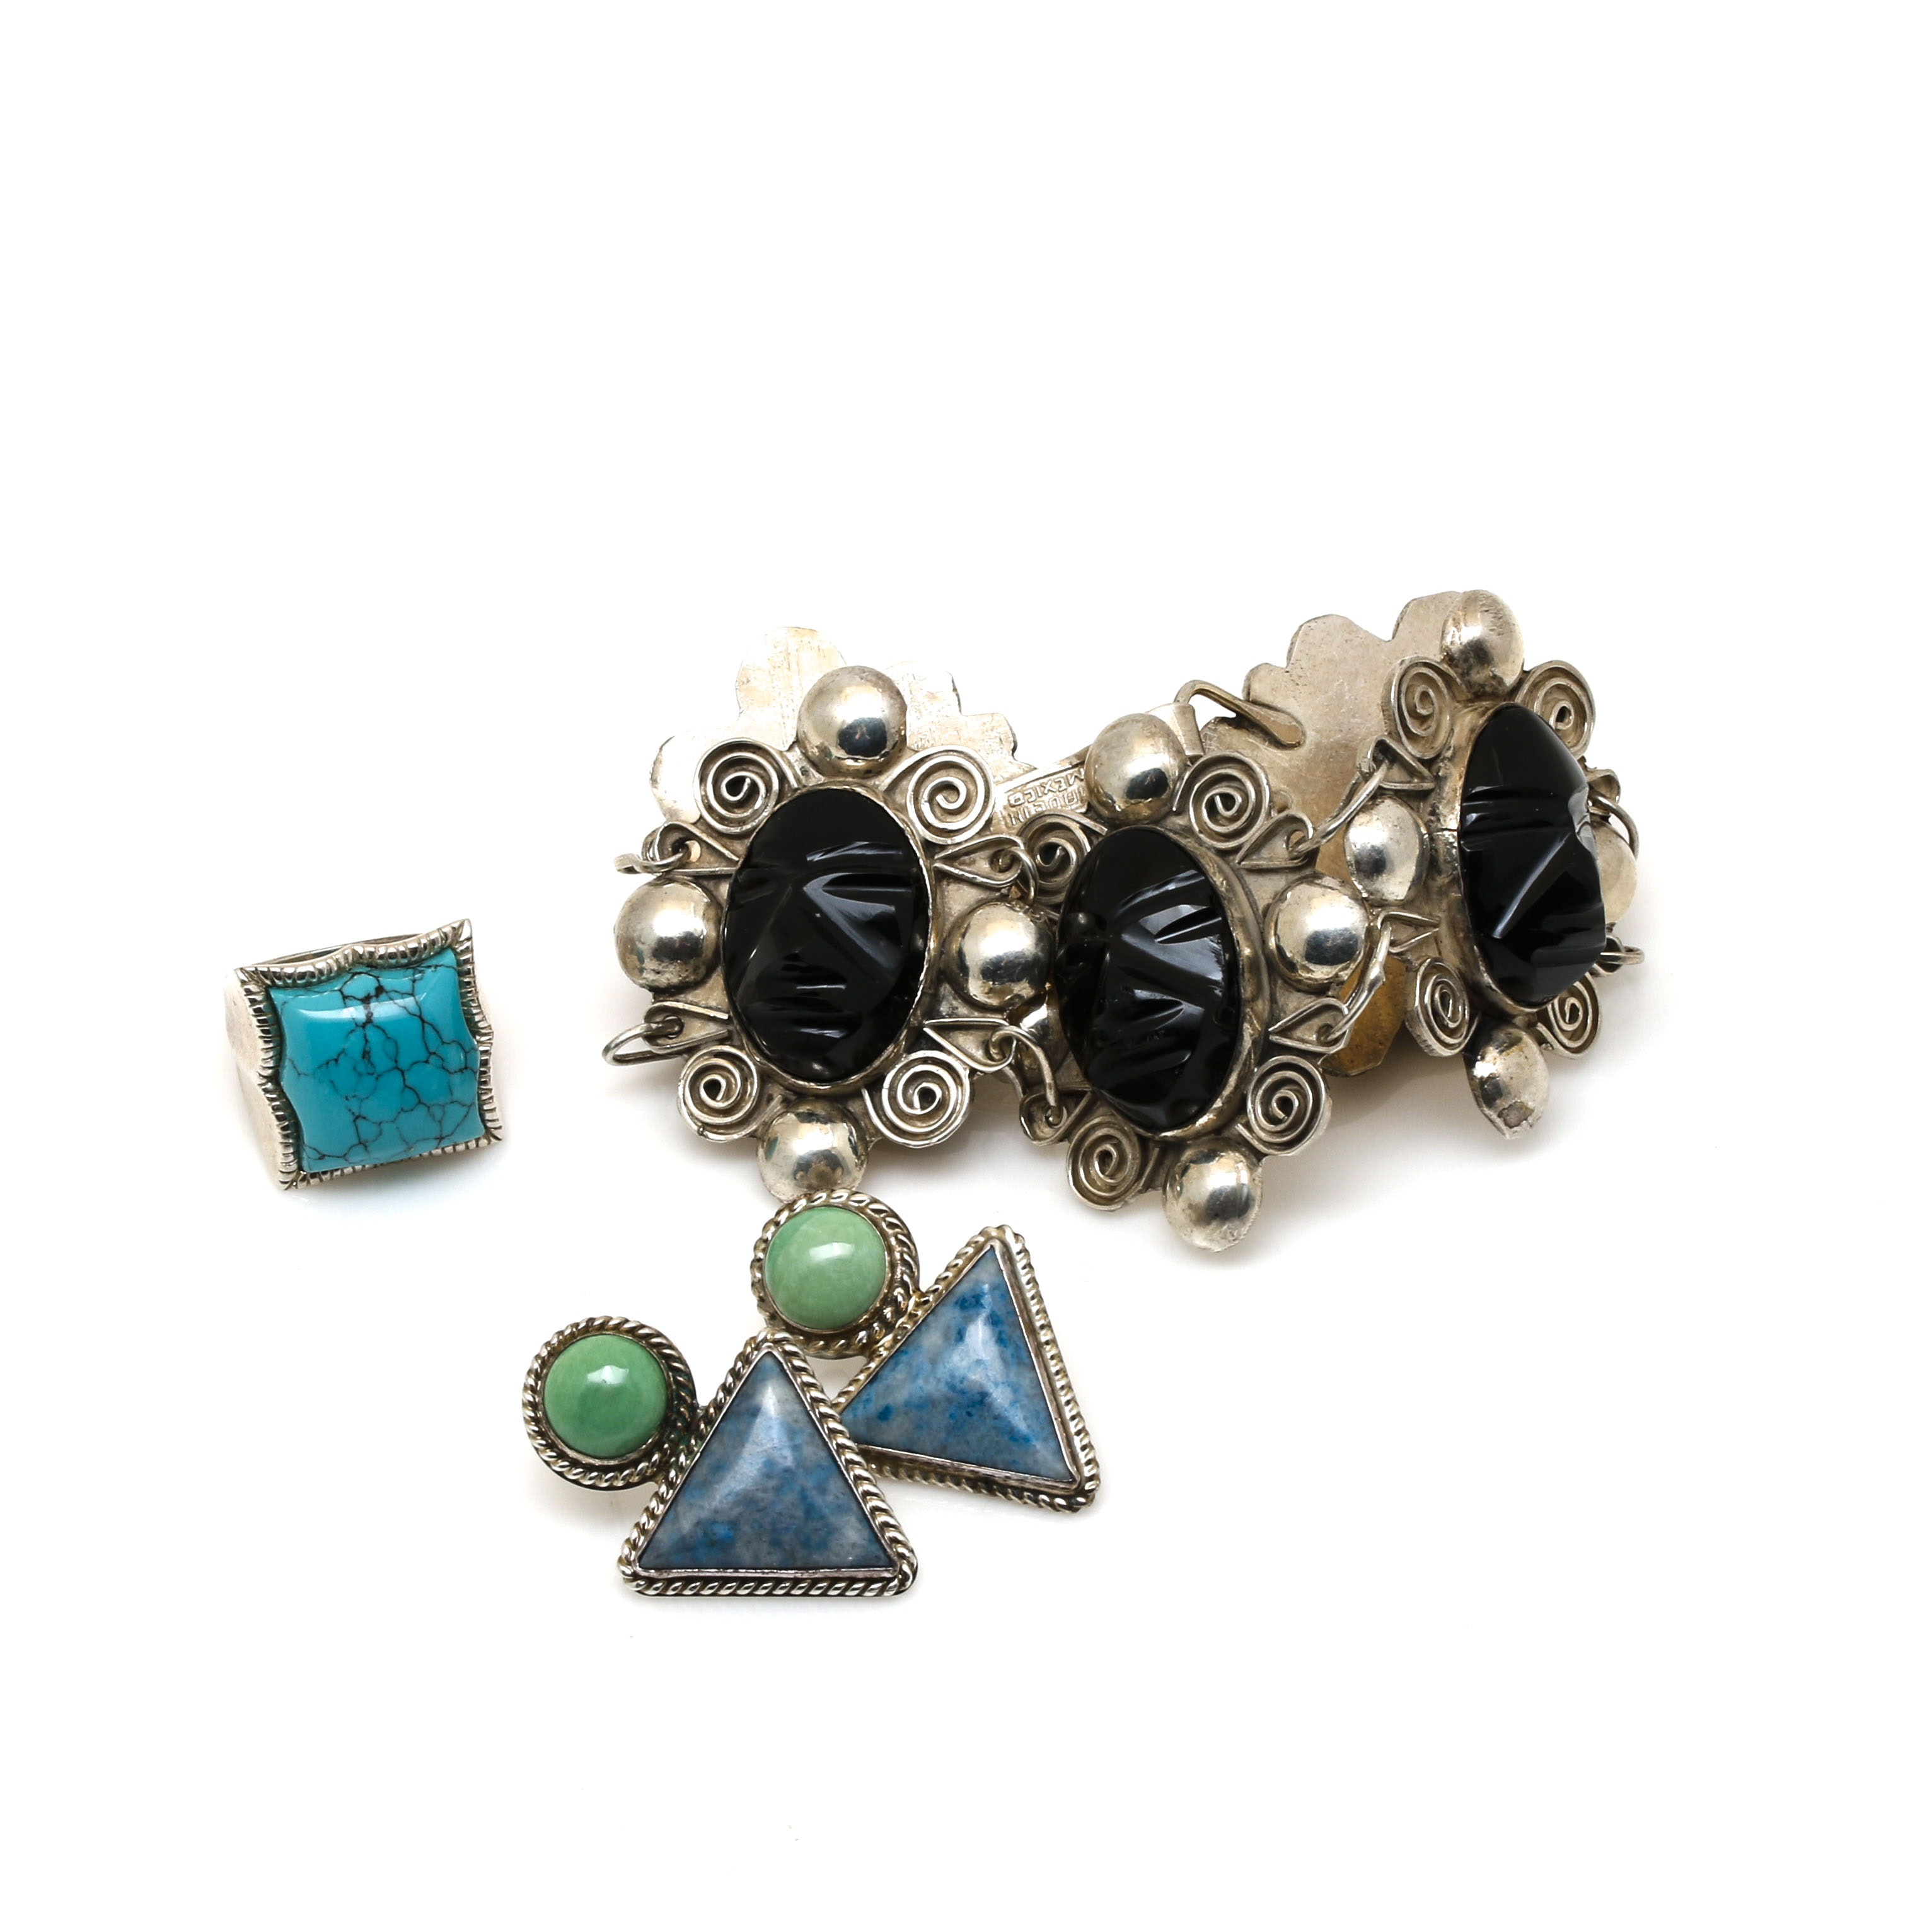 Southwestern Style Sterling Silver Jewelry Including Carolyn Pollack